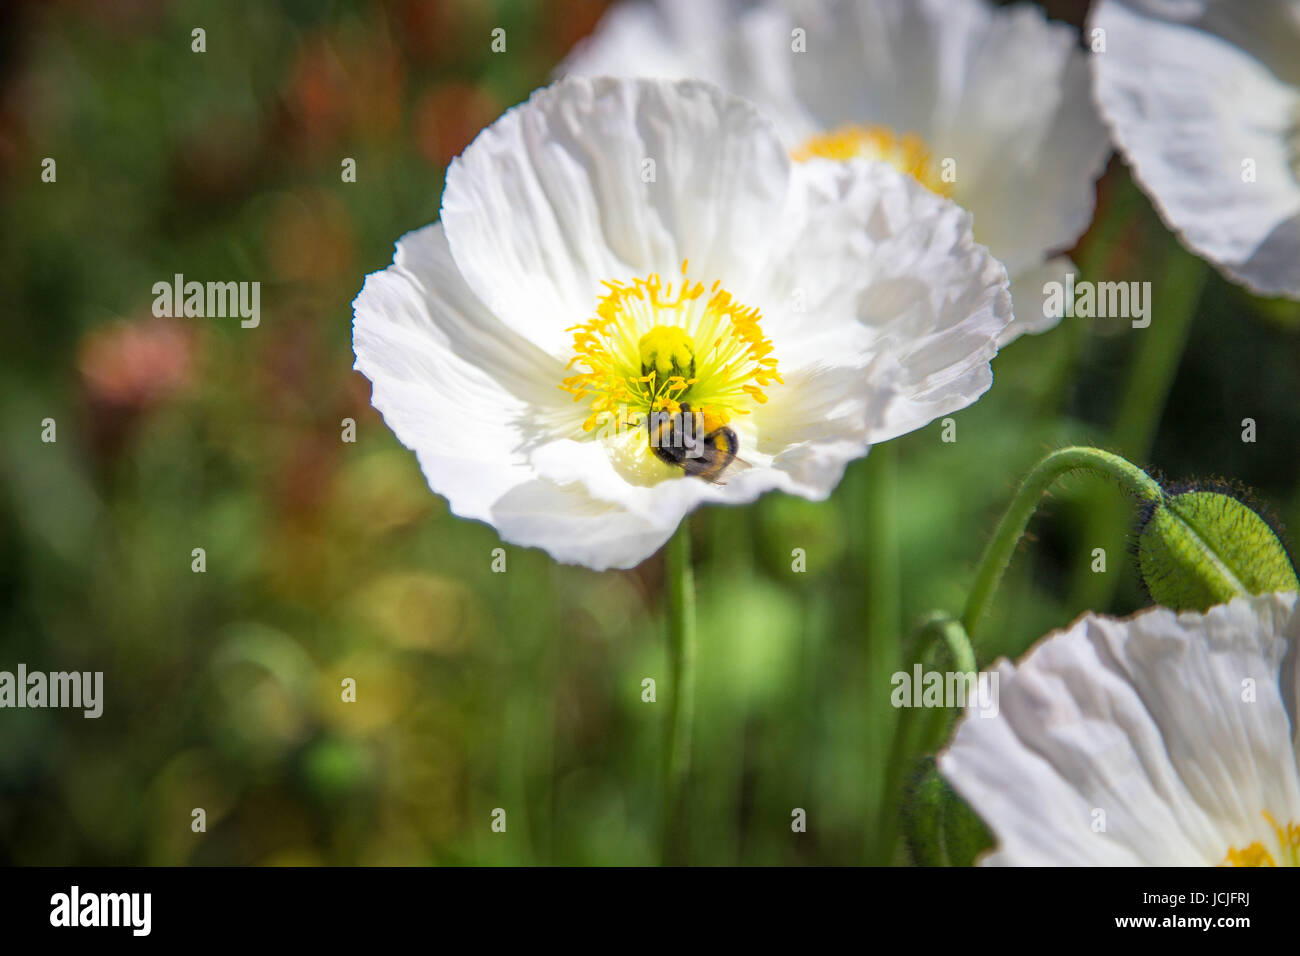 Tropical White Flower With Yellow Center Image Collections Fresh